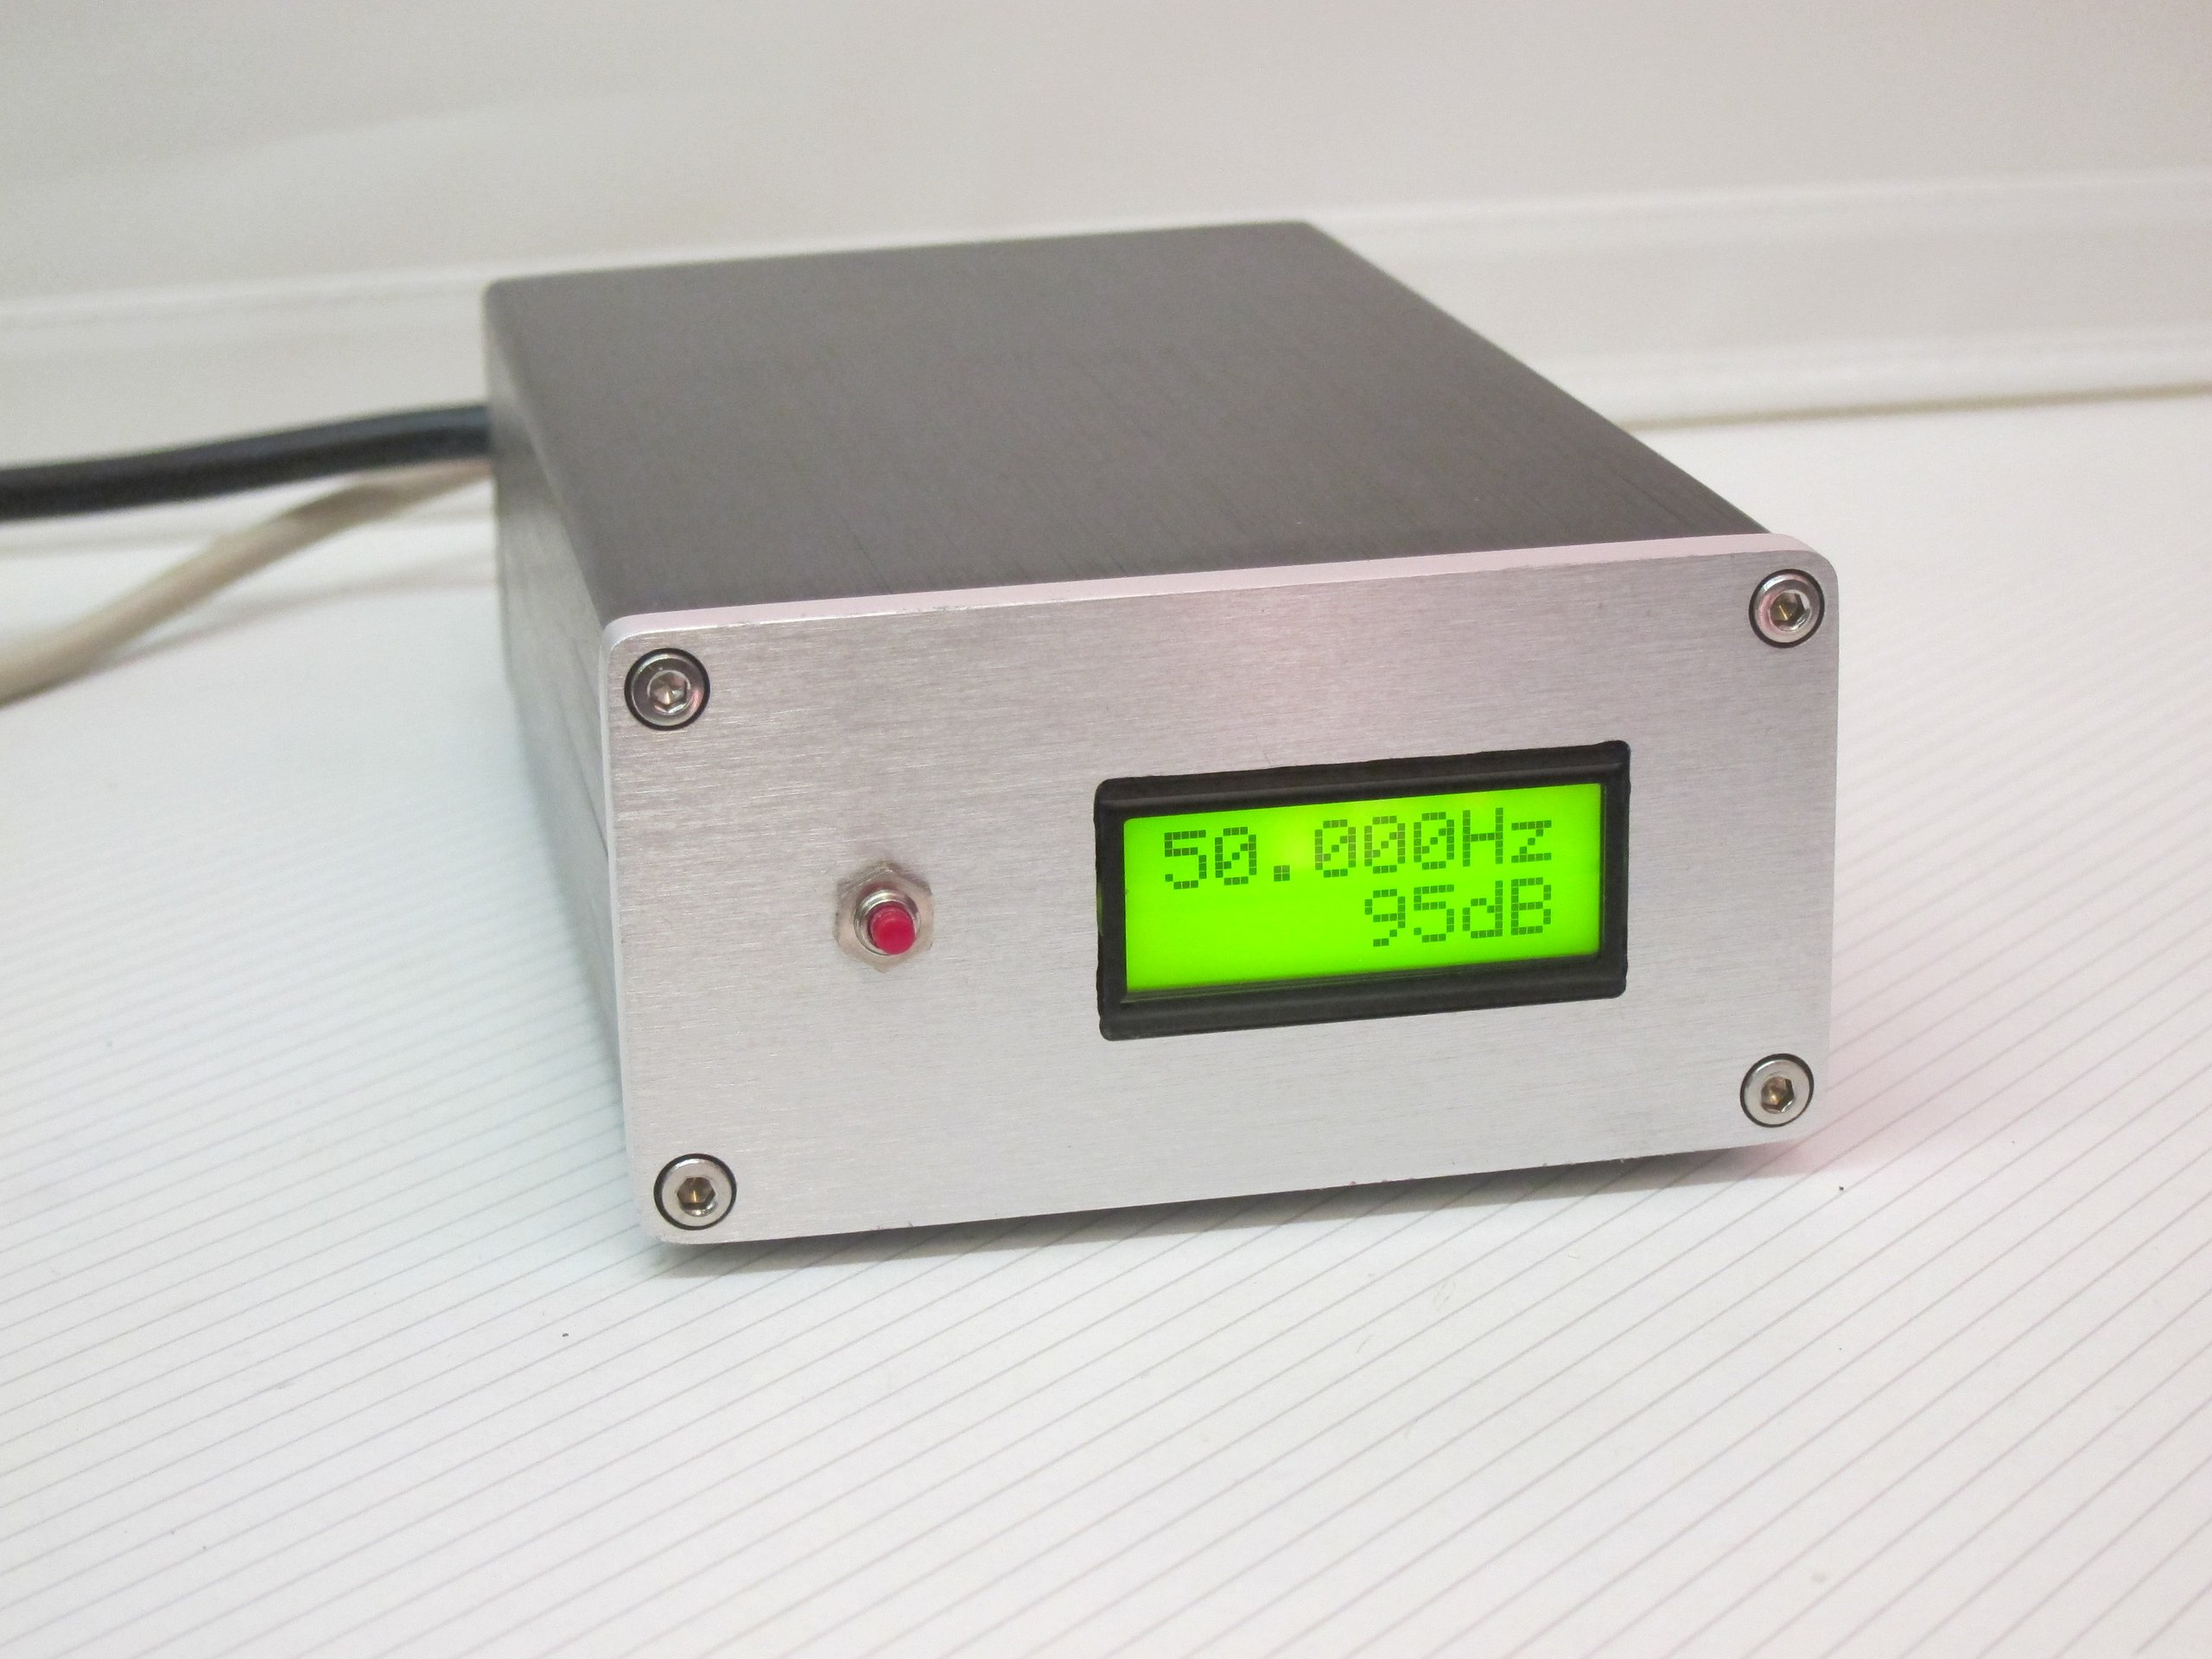 Ac Frequency Meter : Mains ac frequency meter from detlefs on tindie